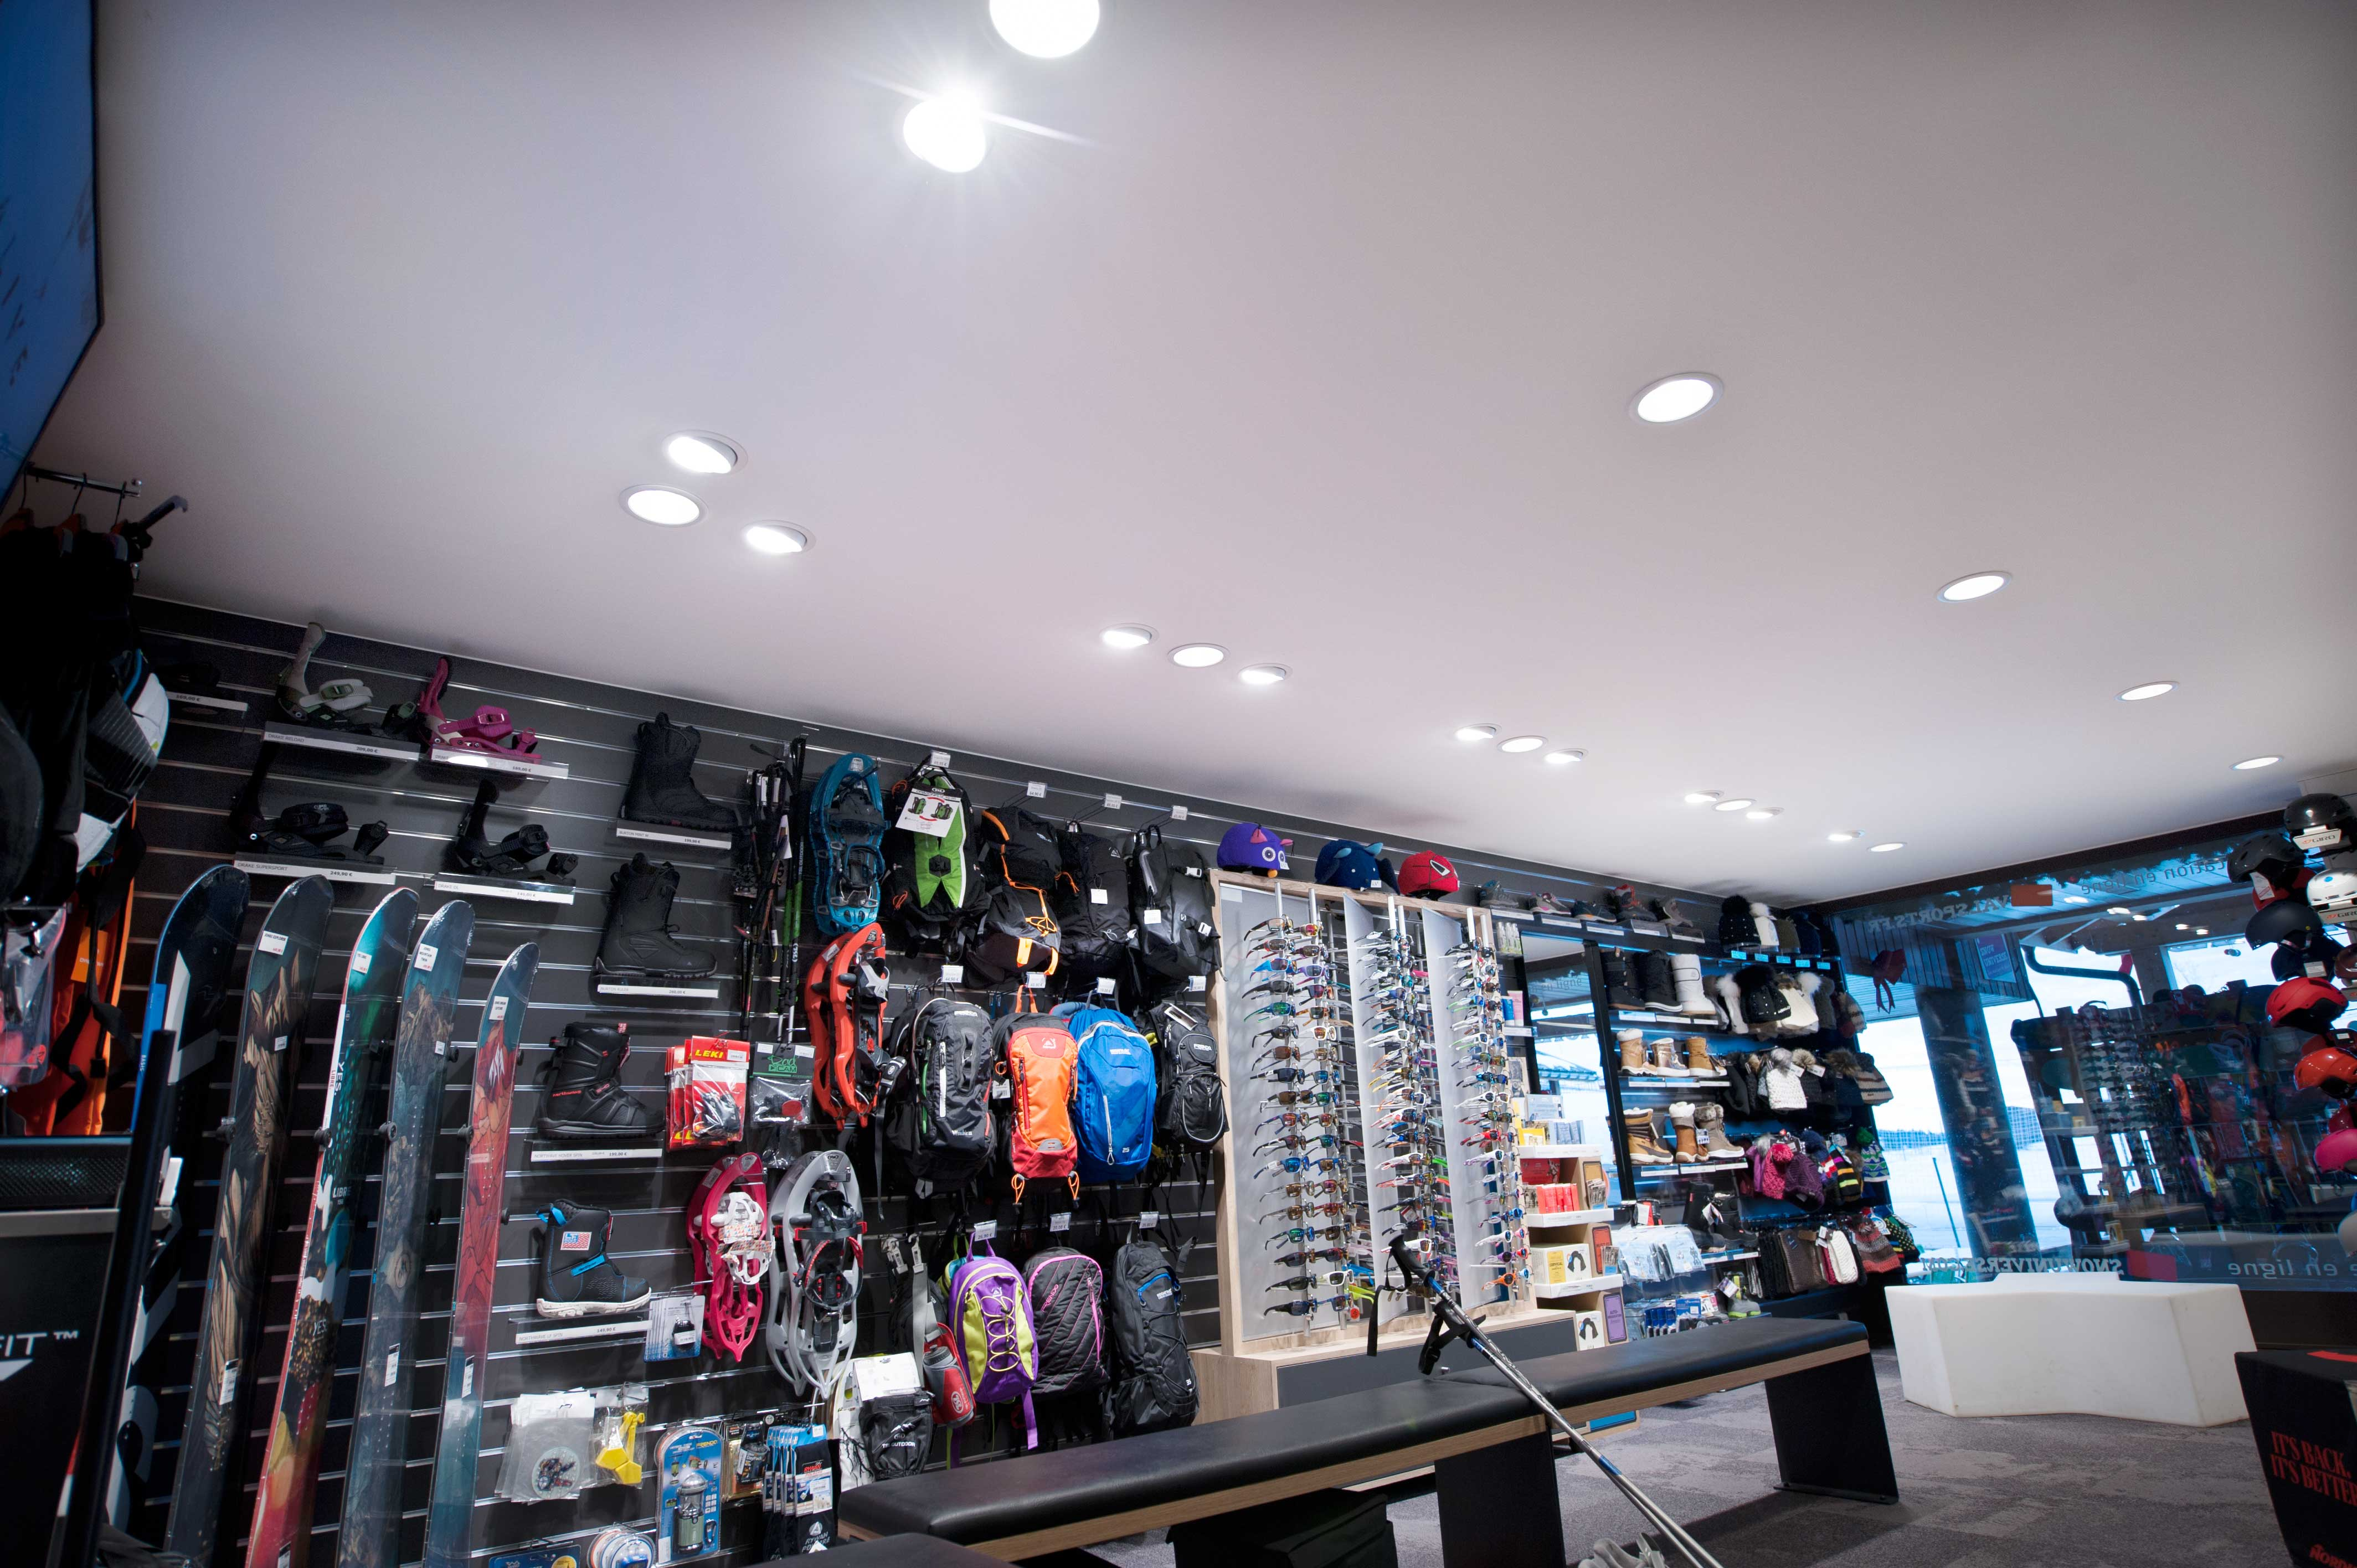 Renovation du plafond de ce magasin de ski